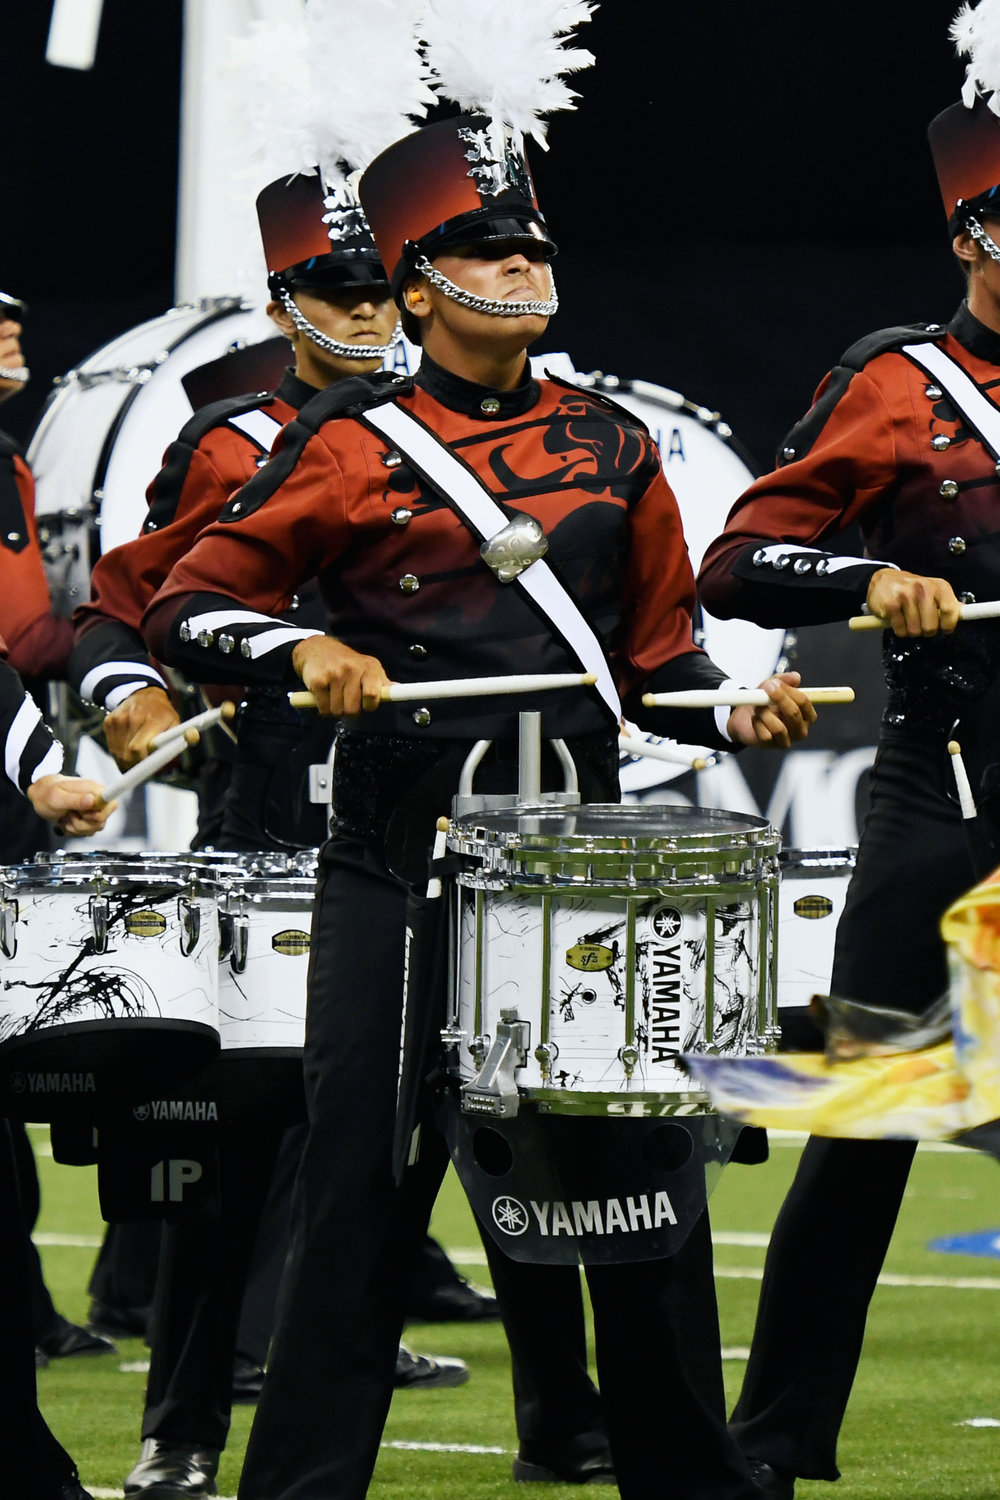 Boston_Crusaders_P1_16_HiRes_RGB.jpg